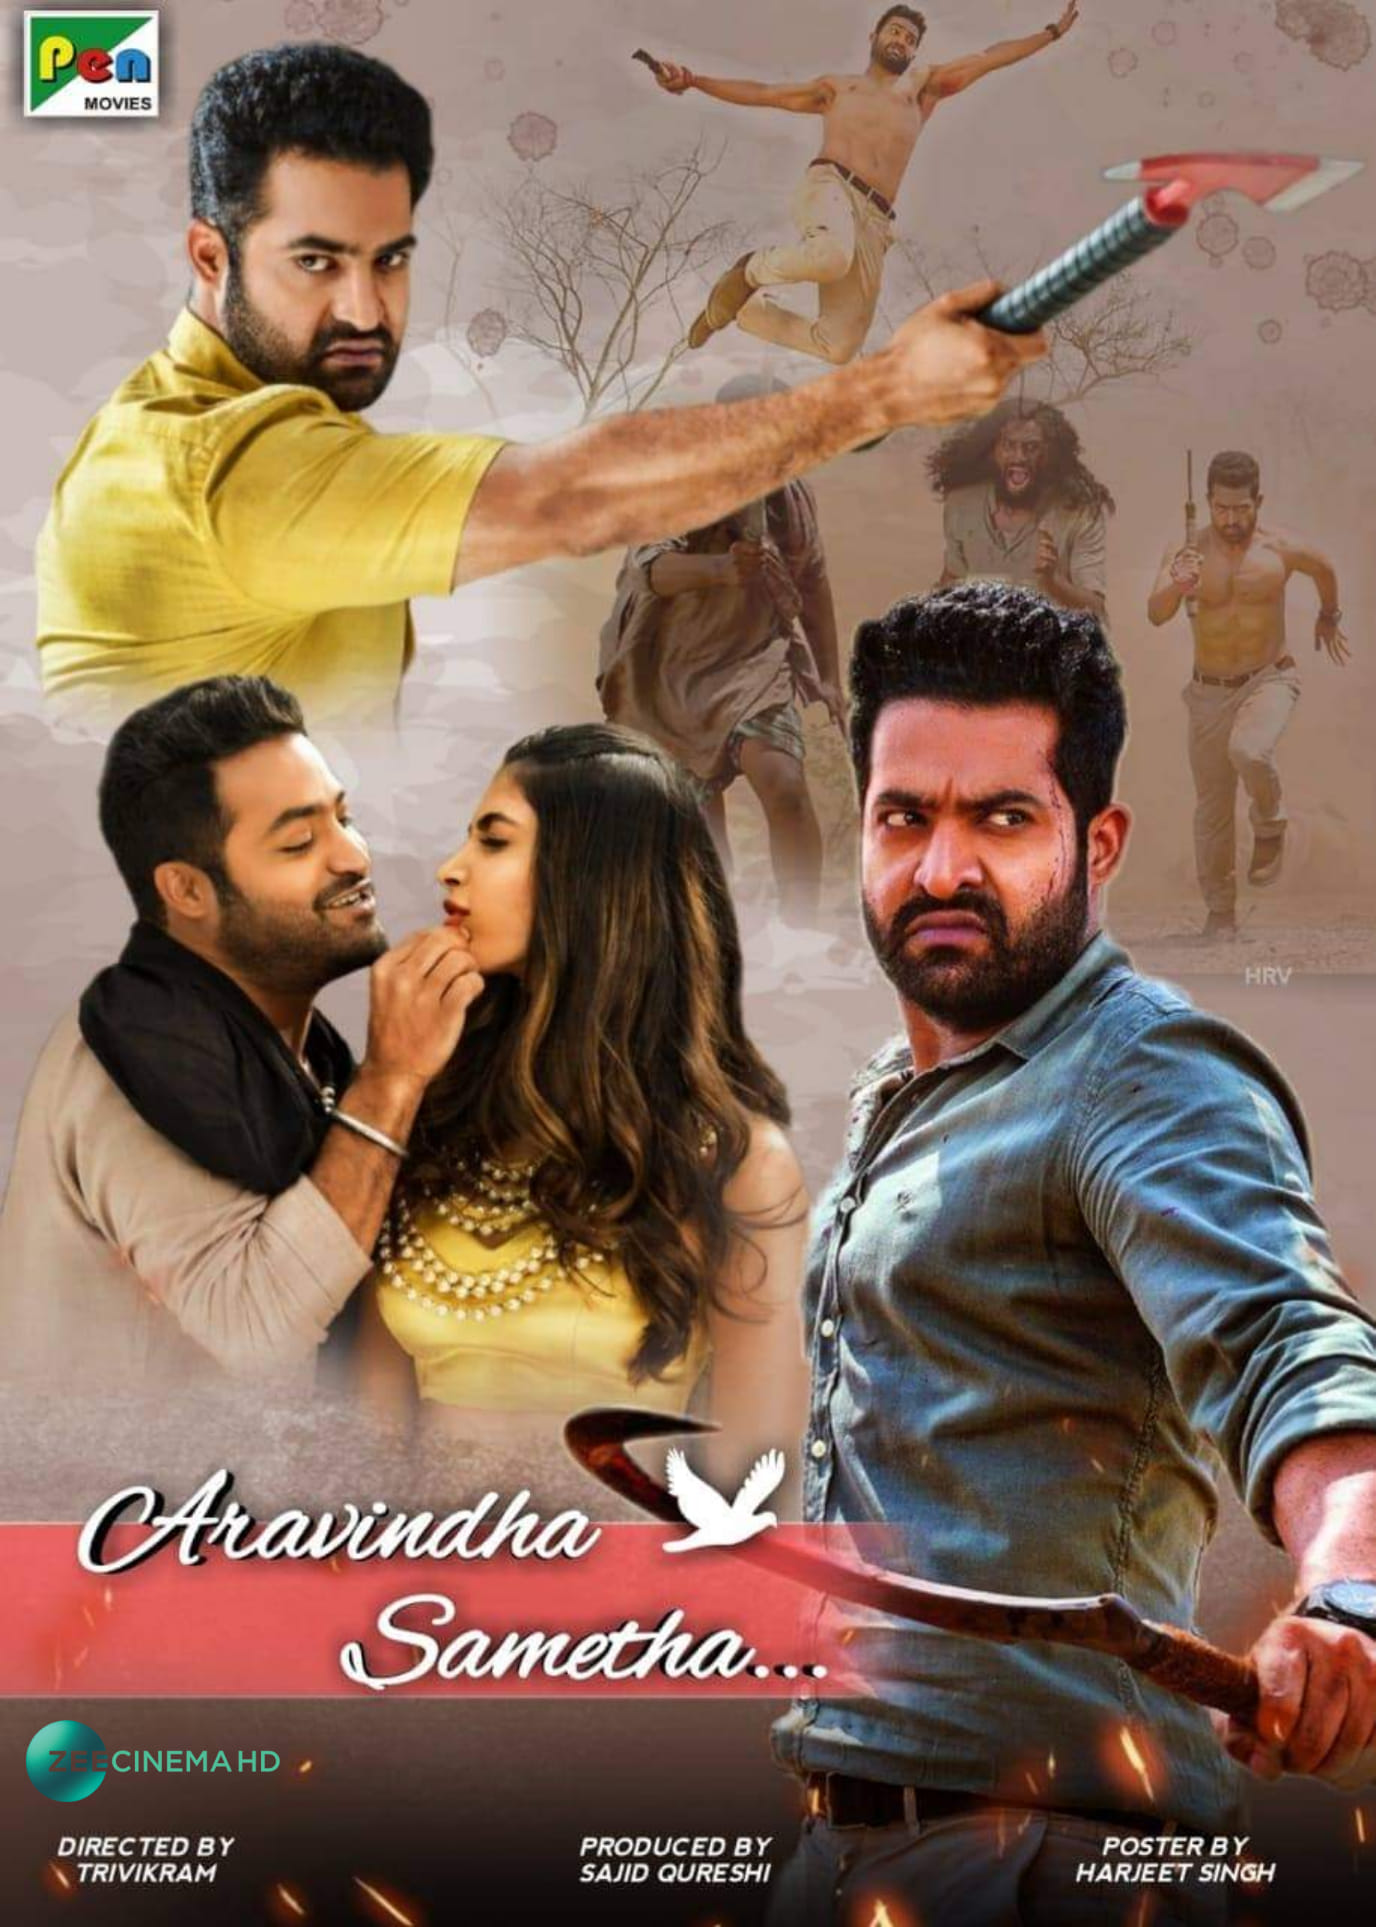 Aravinda Sametha Veera Raghava 2020 Hindi Dubbed 720p UNCUT HDRip 800MB Download *Zee5*